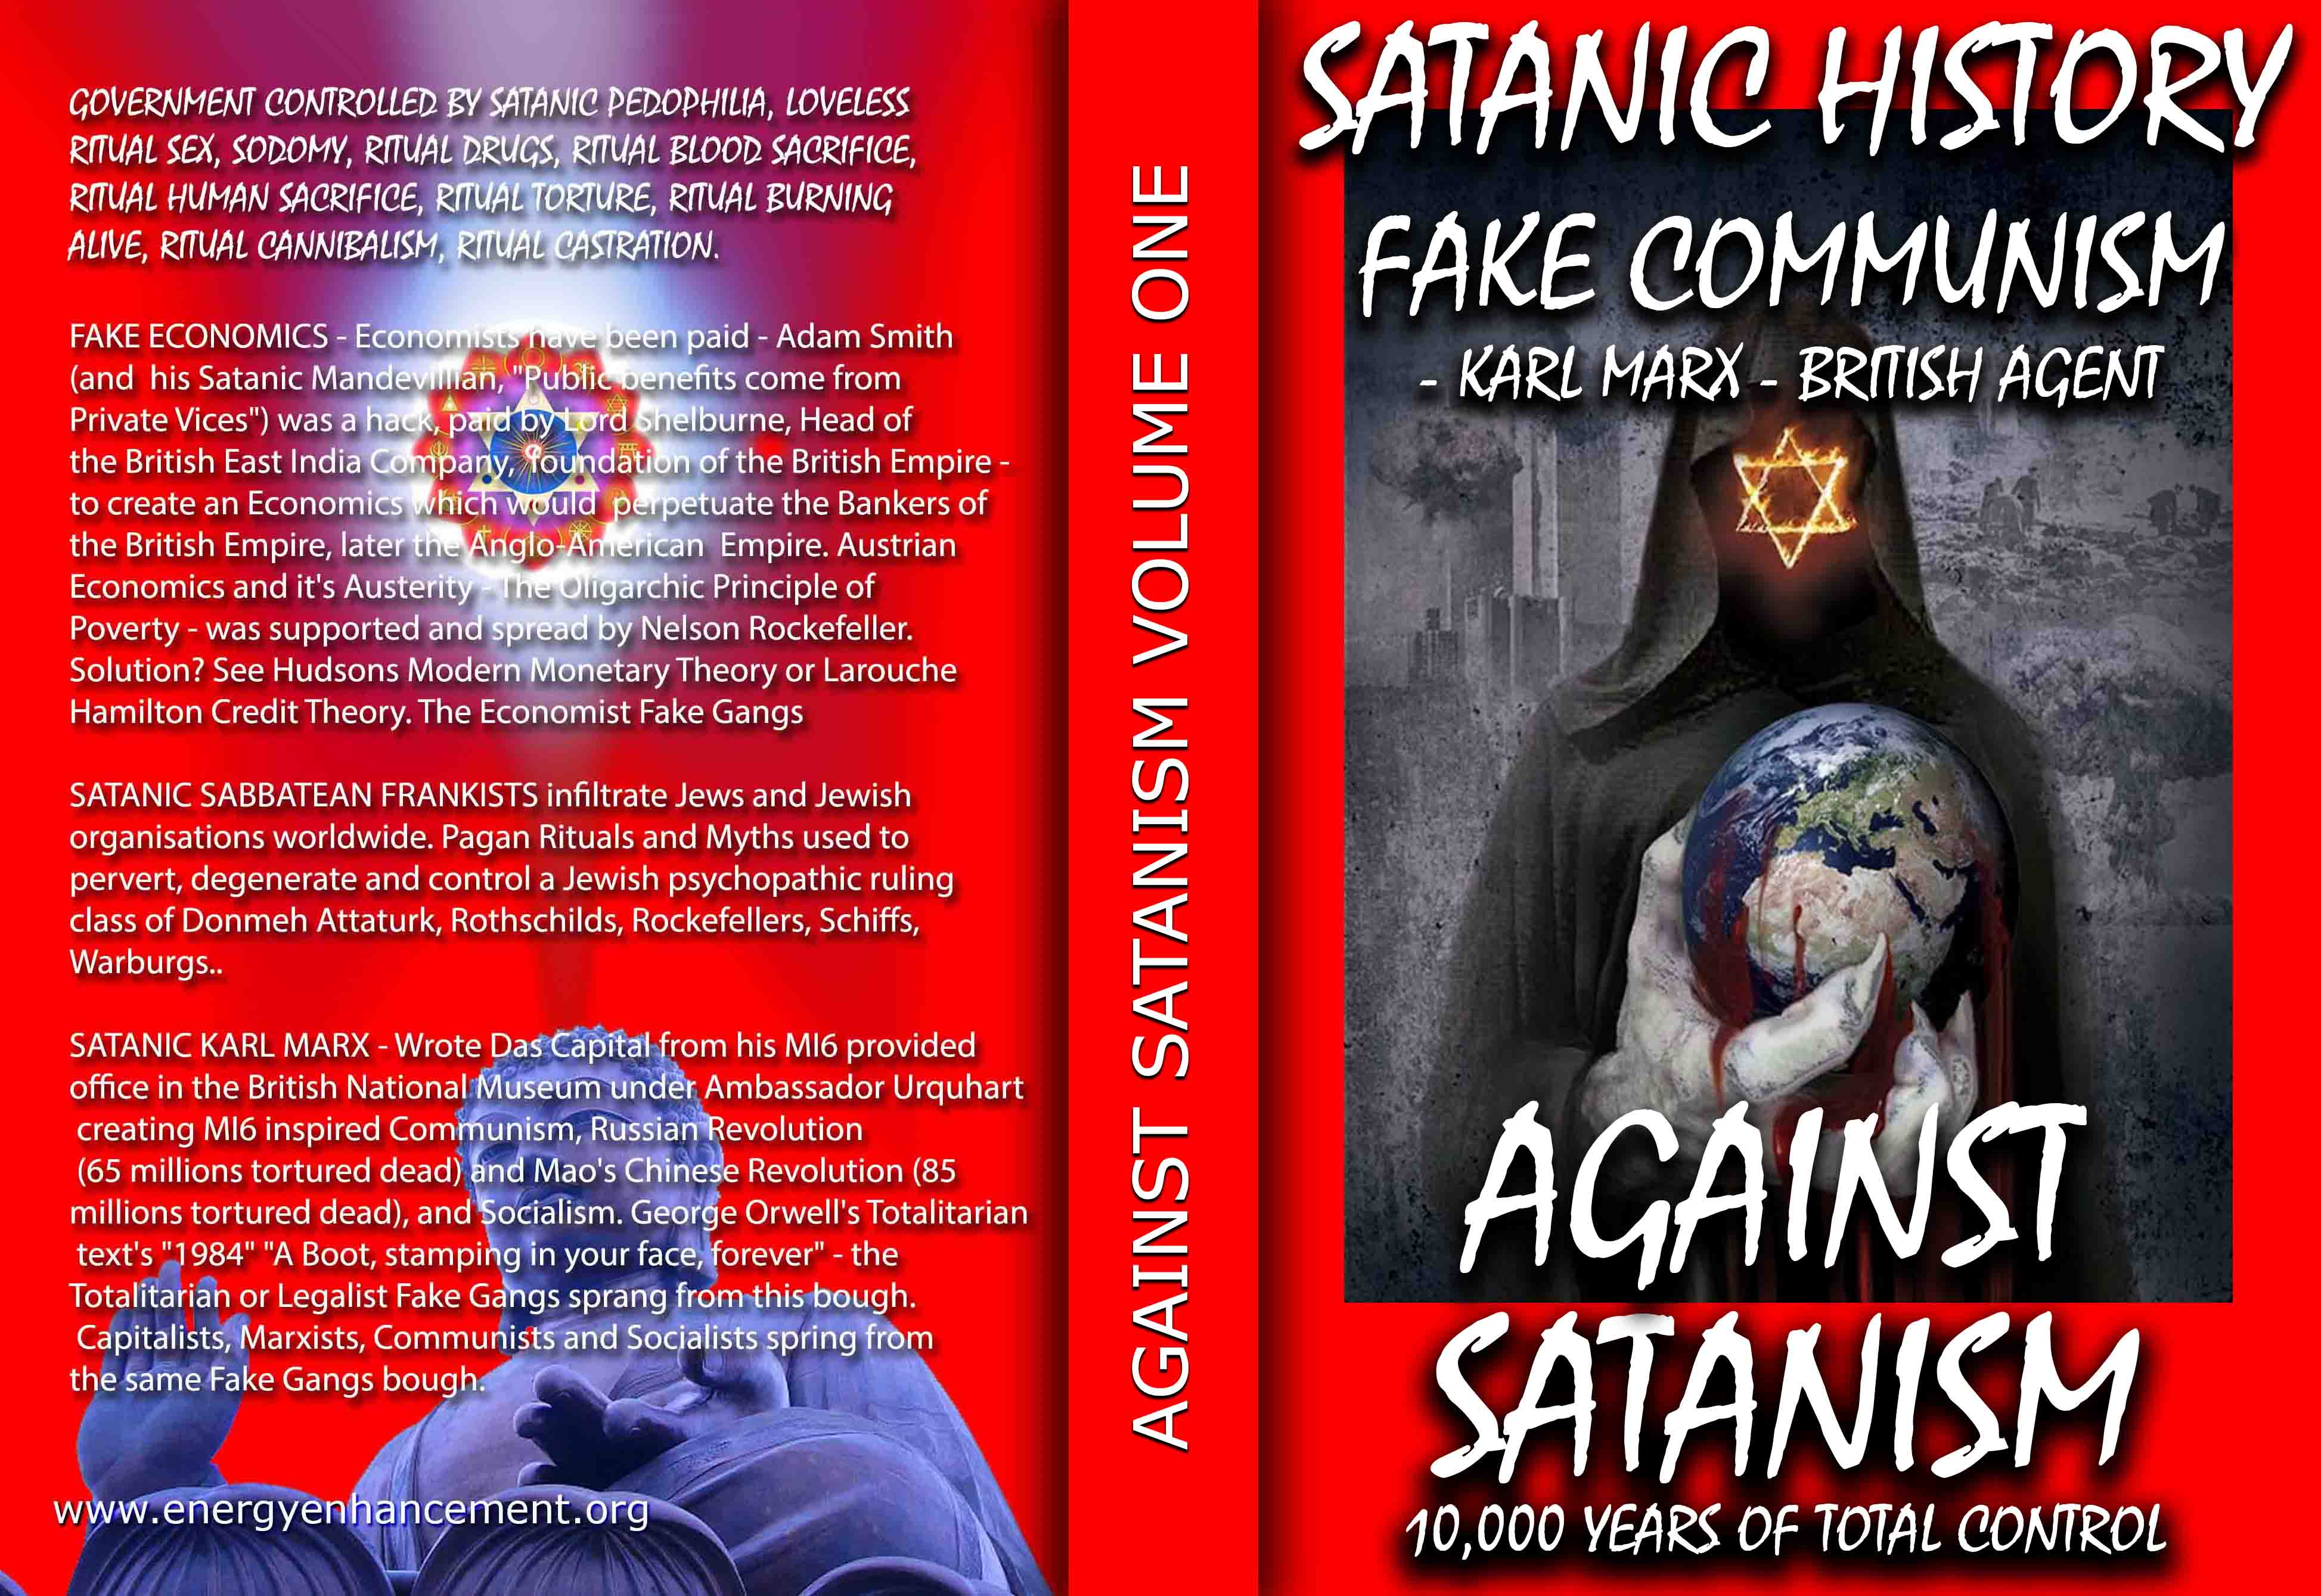 Description: Description: C:\wnew\Sacred-Energy\Against-Satanism\Satanism-Book-Vol-1-final.jpg